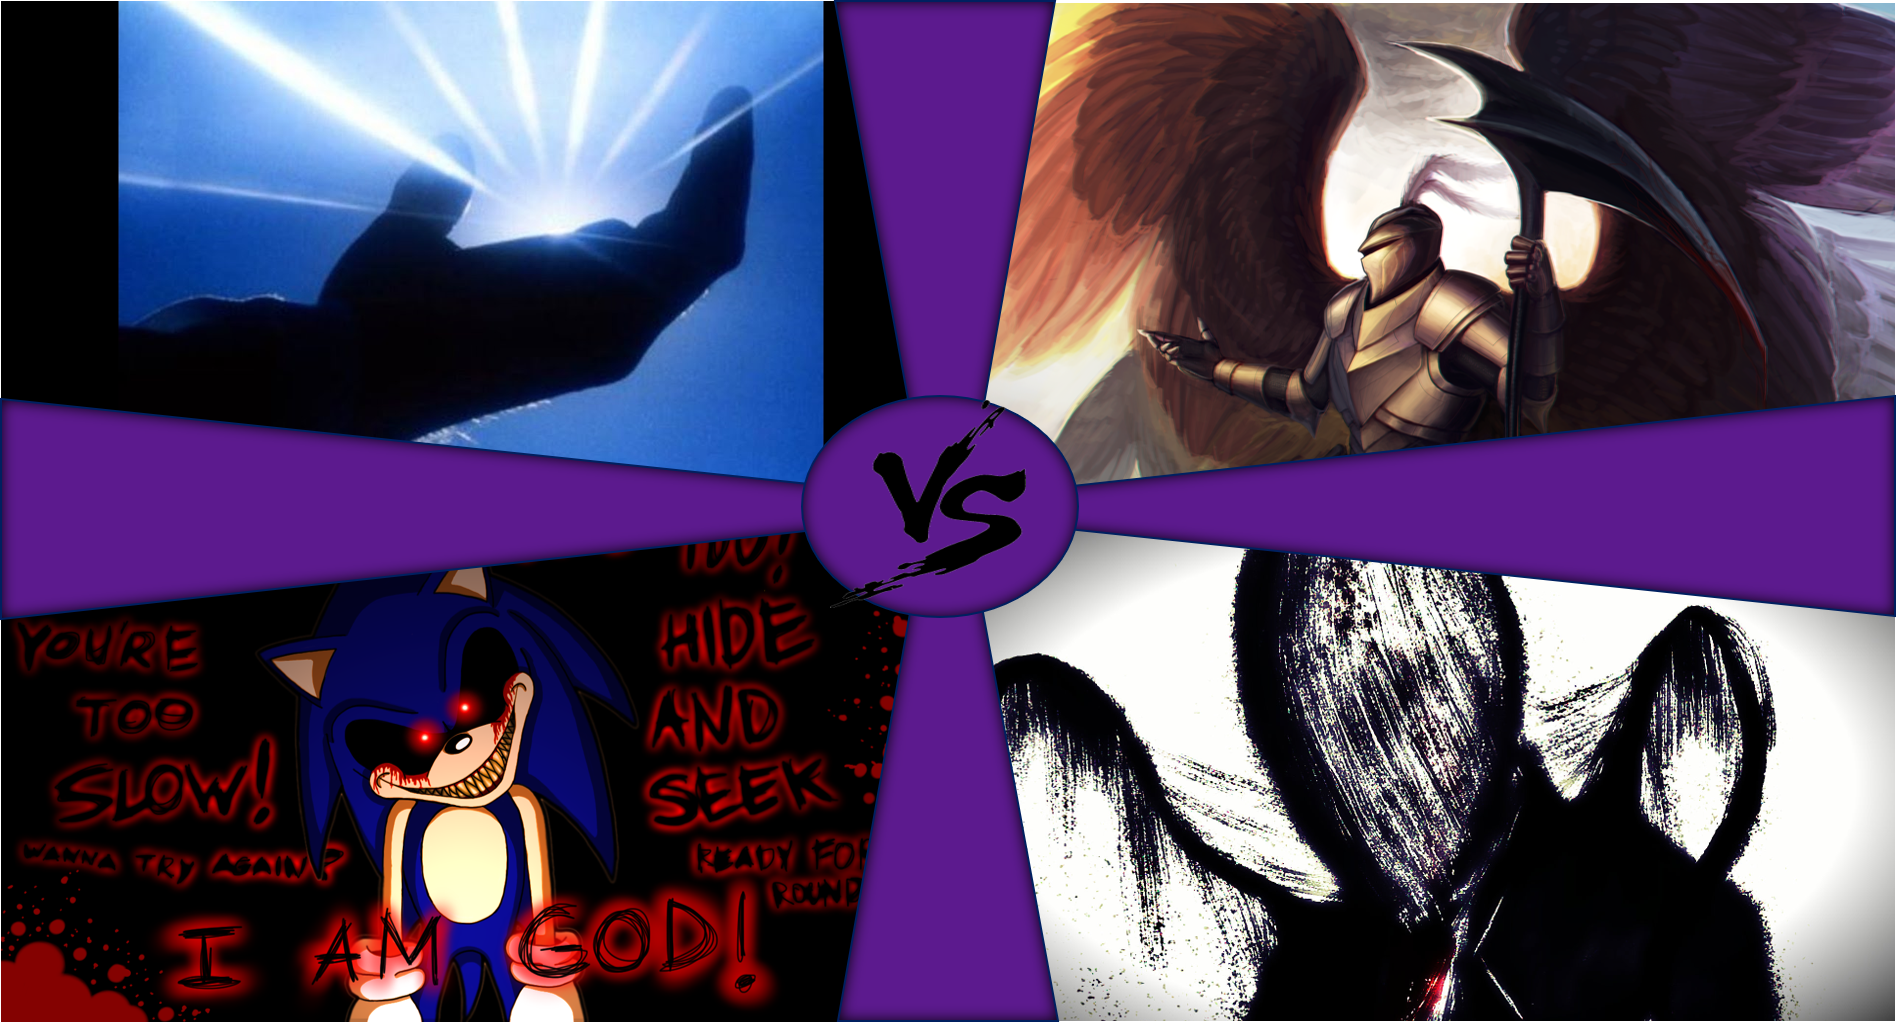 Universal Battle Royale: From this 4 characters, who wins??? Speed is equalized